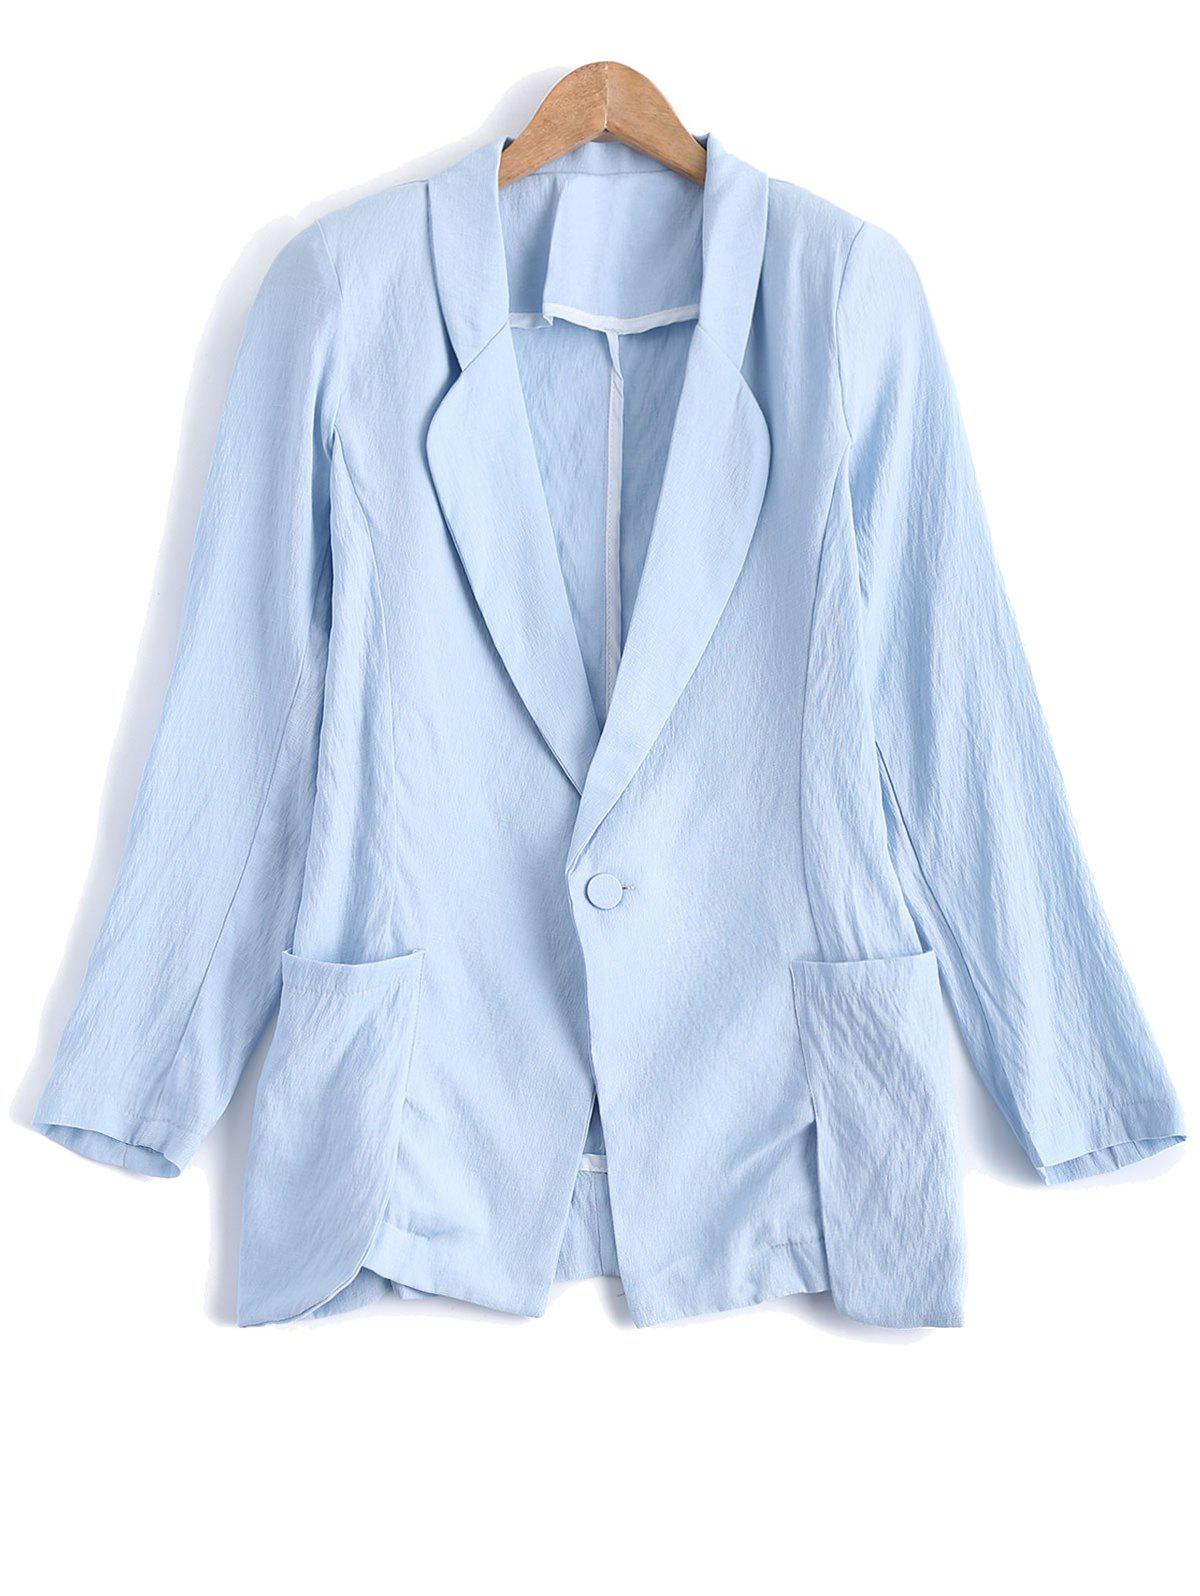 Turn Down Collar Pocket Linen One Button Blazer - Bleu Clair XL